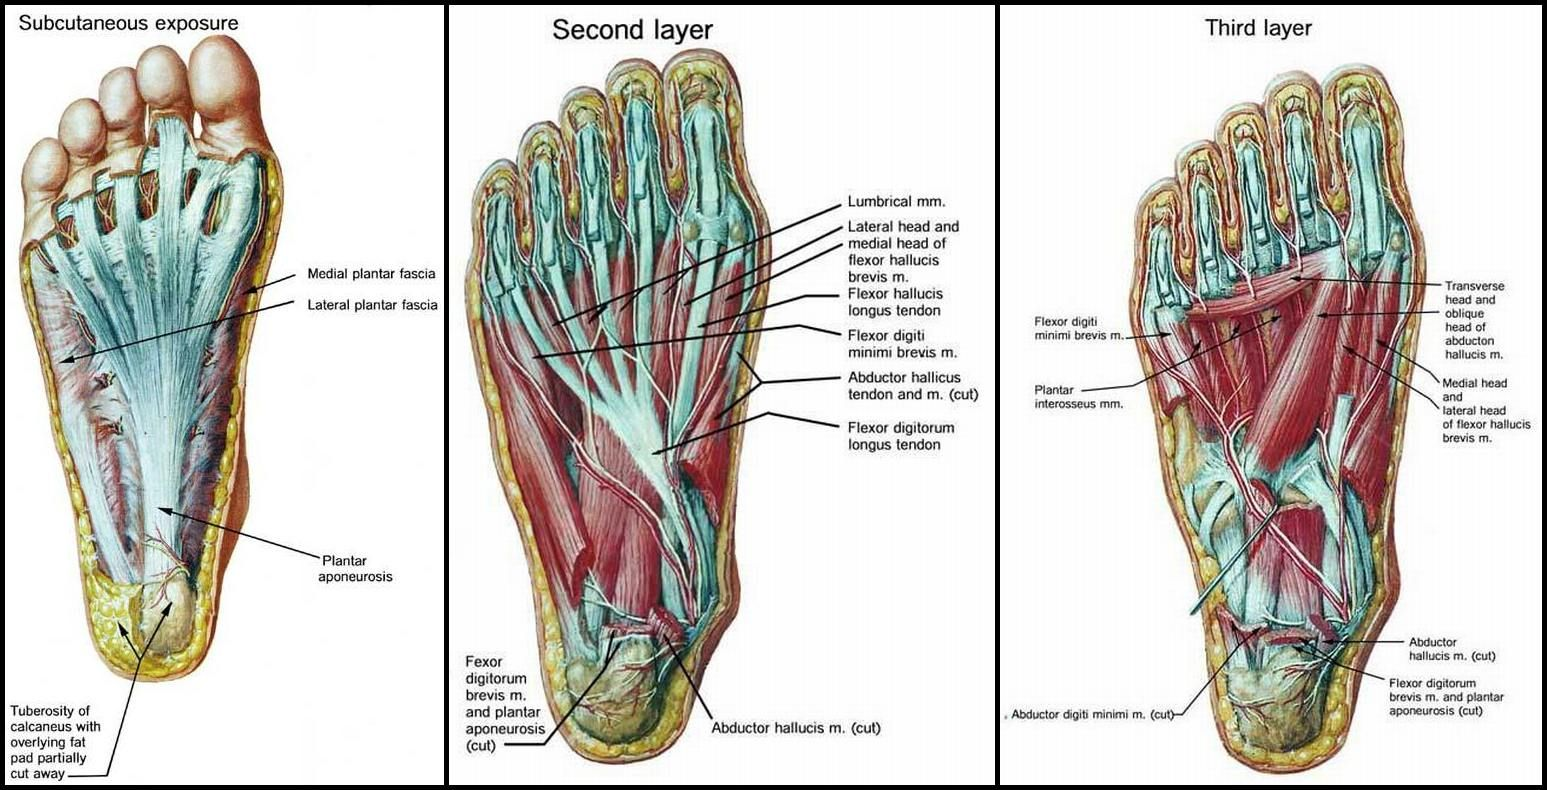 Is your abductor hallucis muscle killing you? This foot arch muscle ...